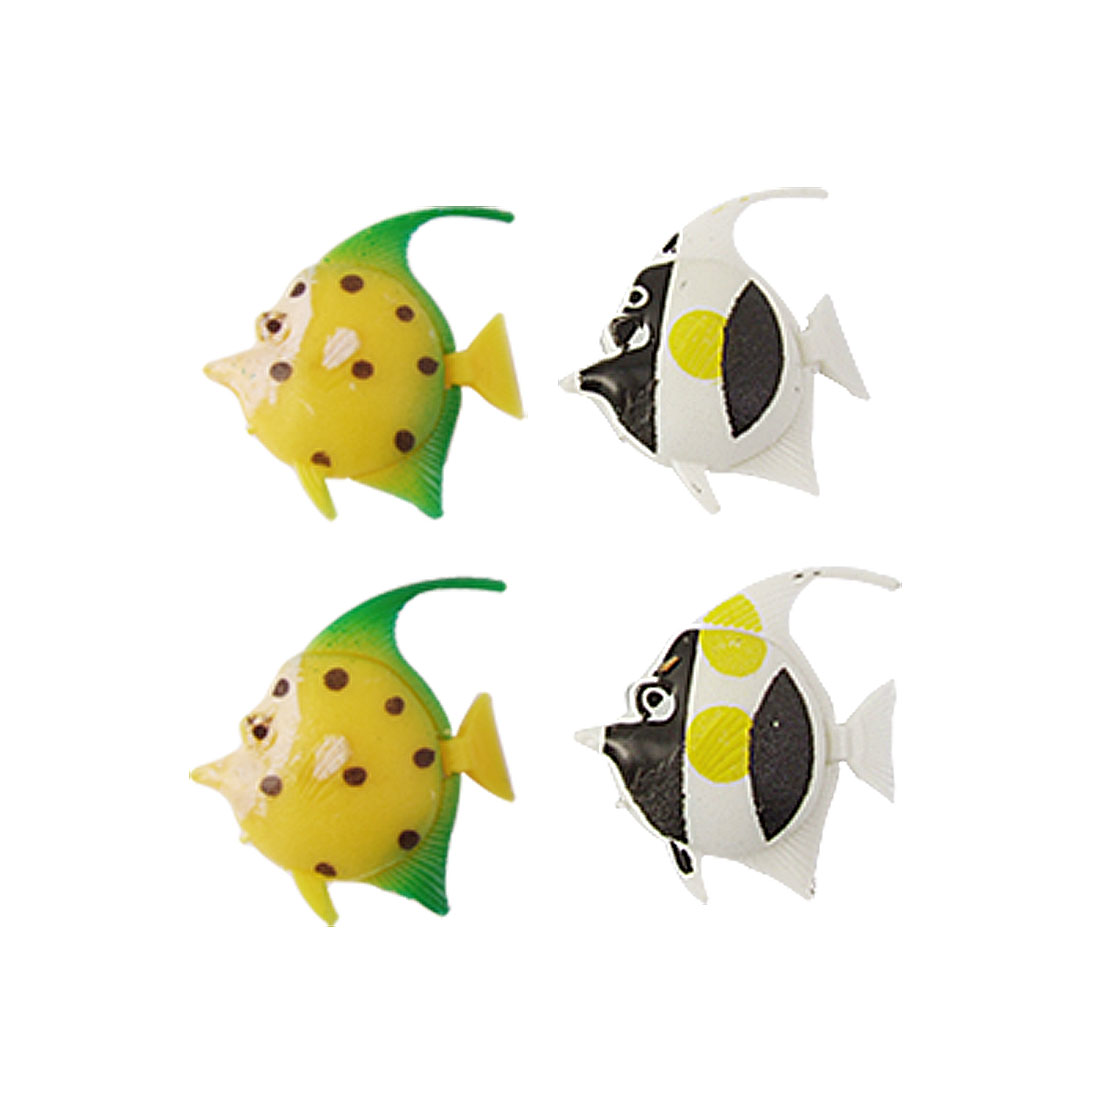 Aquarium Multi-colored Plastic Movable Fish Decor 4 Pcs